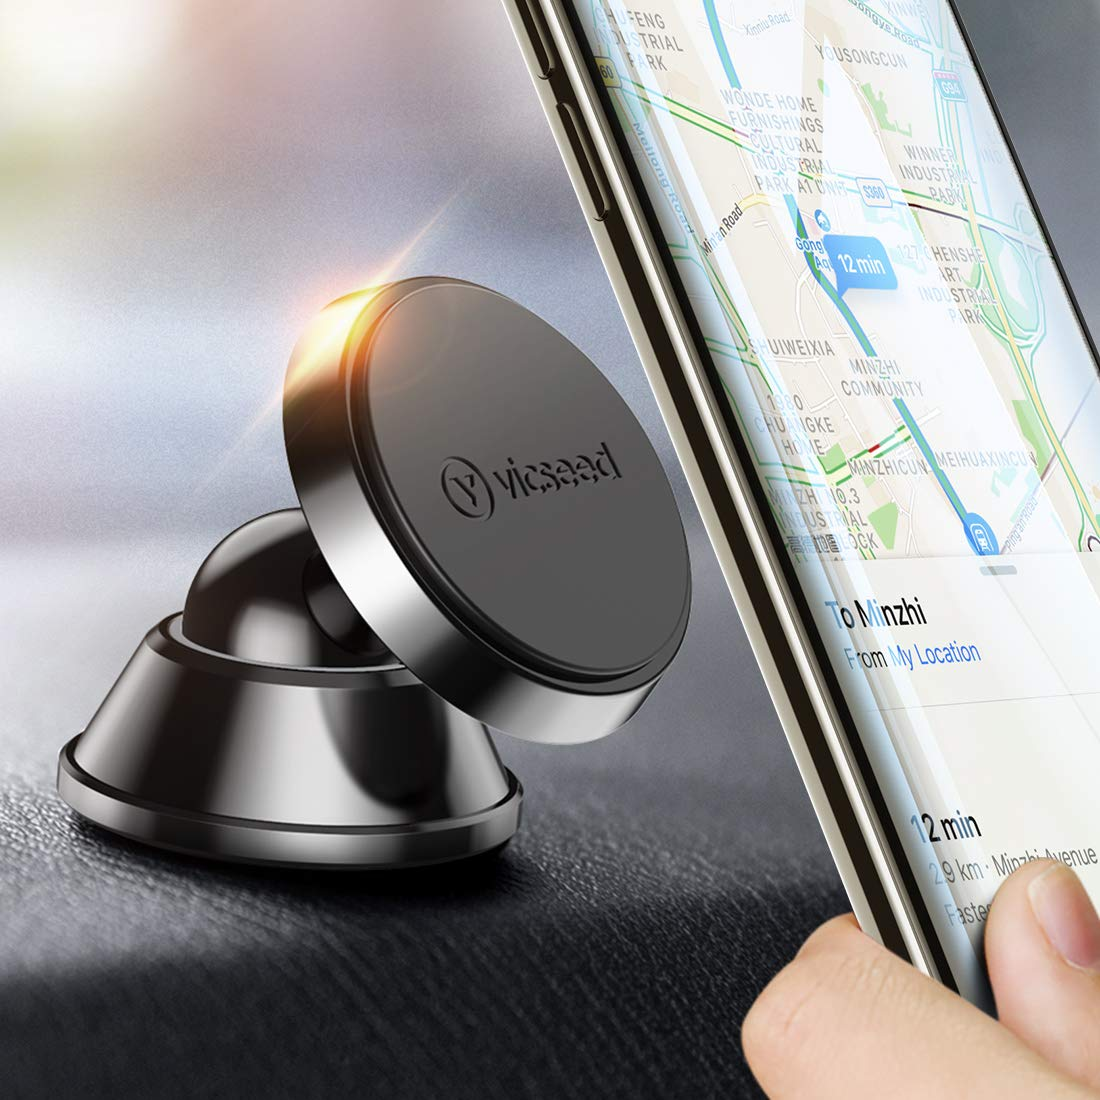 VICSEED 3M Magnetic Phone Holder, N52 Magnetic Car Phone Holder Car Dashboard Phone Holder 360°Rotation Car Mount Universal Car Cradle Compatible iPhone XS Max XR X 8 7 Samsung Galaxy S10+ S10e Huawei EZ05CTBK2C